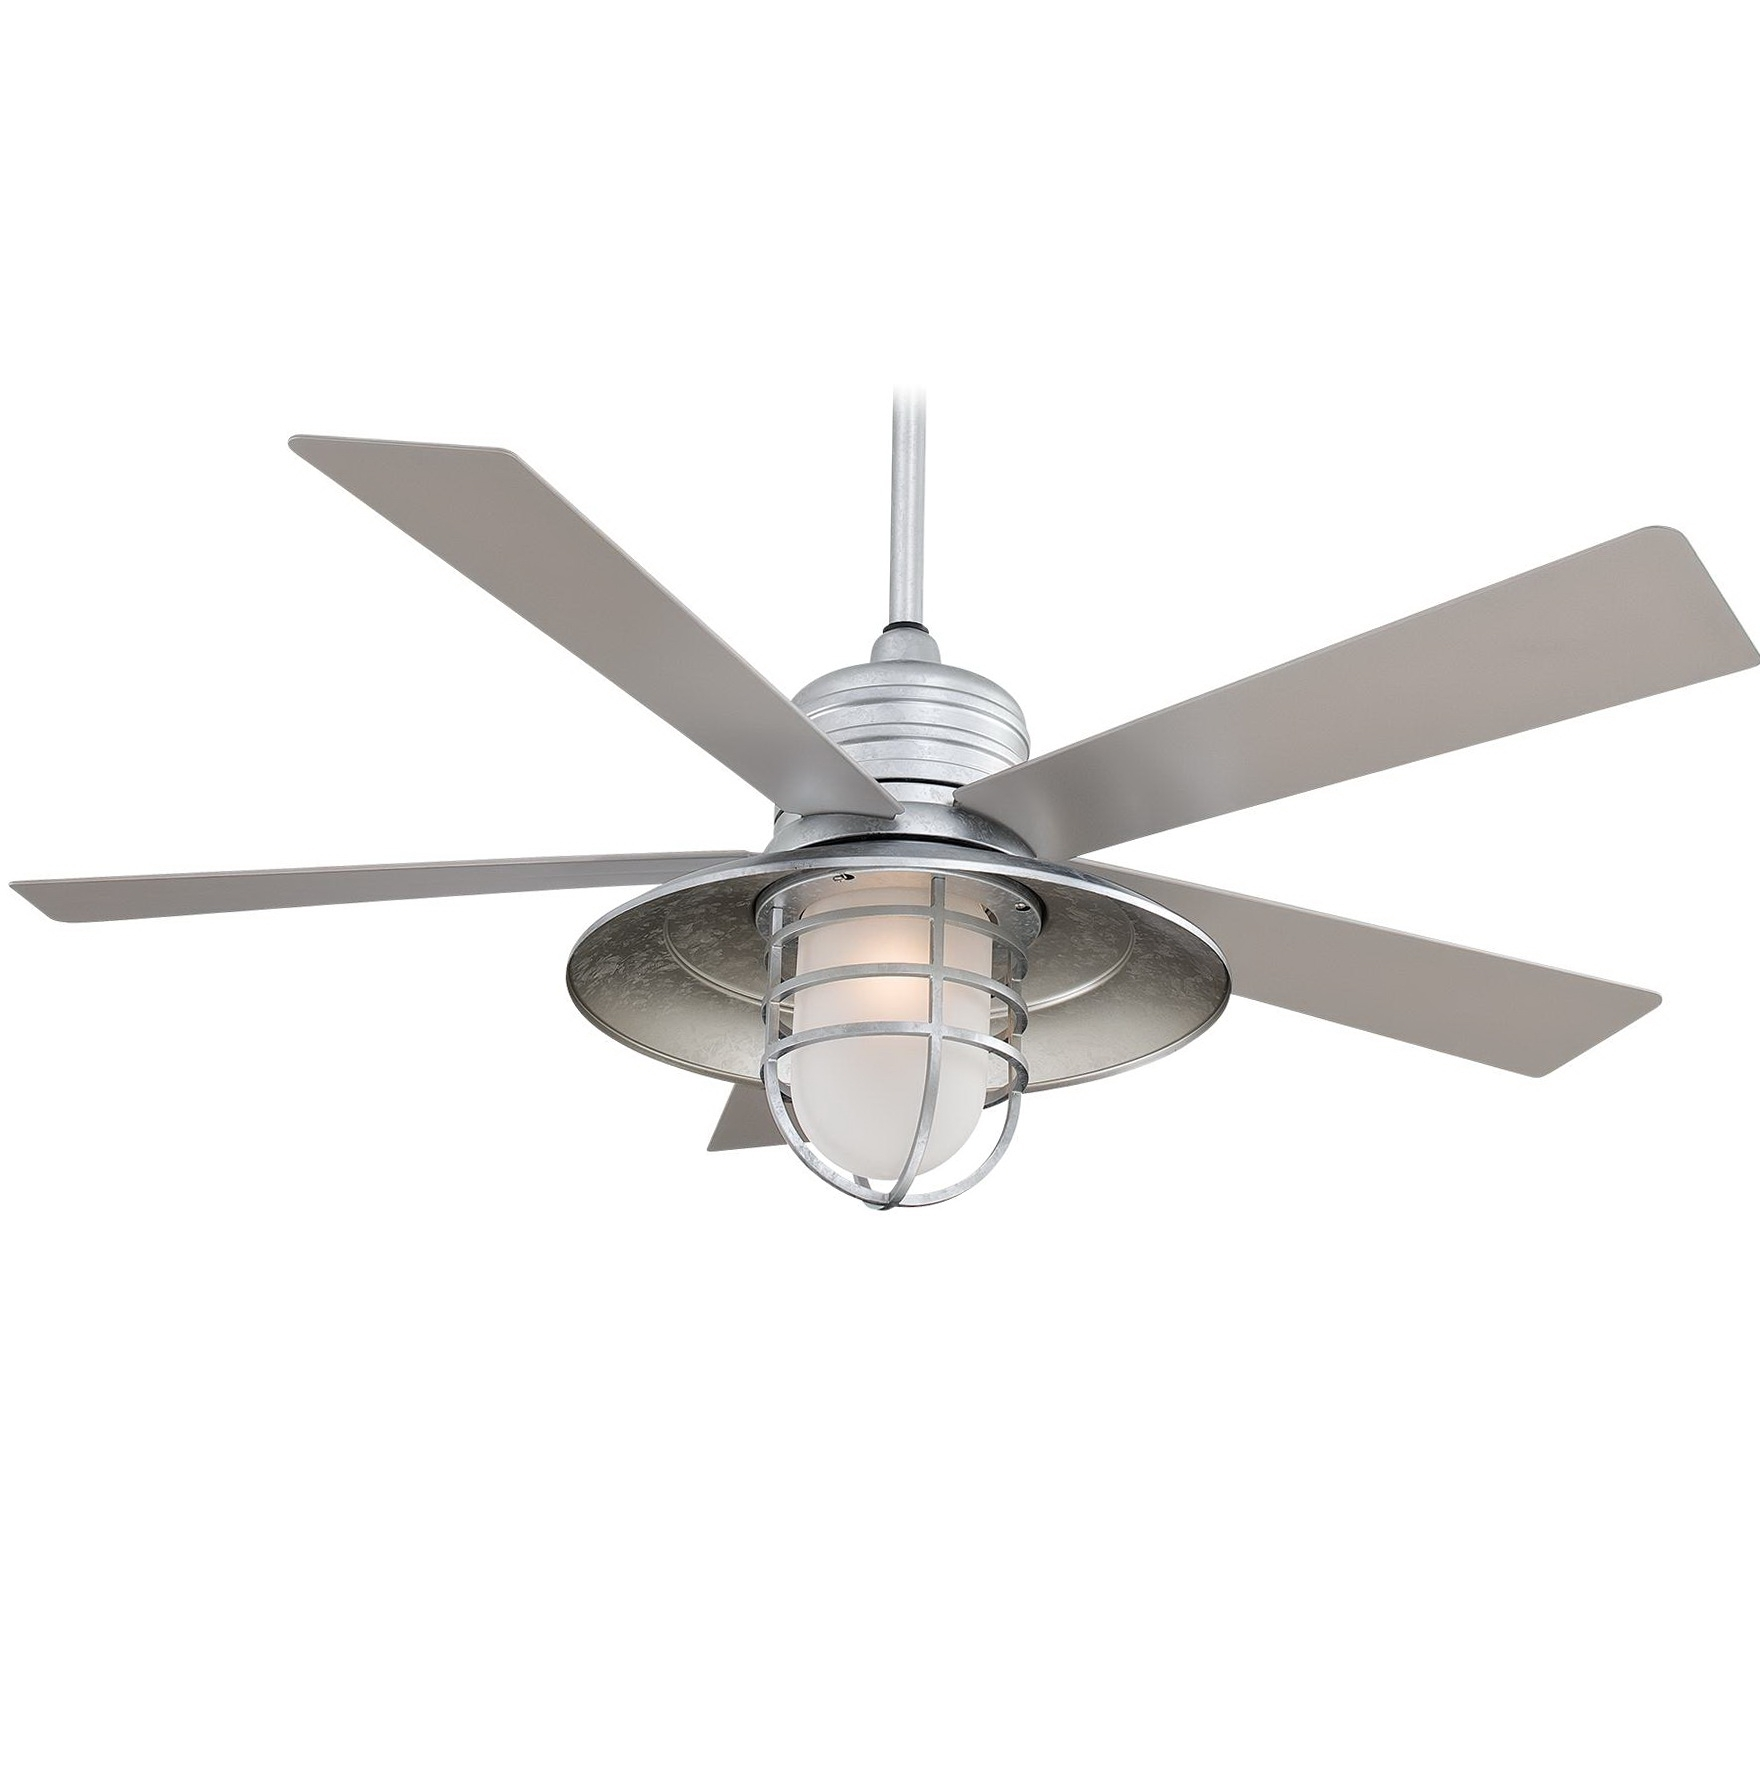 42 Outdoor Ceiling Fans With Light Kit Pertaining To Best And Newest Outdoor Ceiling Fan With Light Kit – Outdoor Lighting Ideas (View 13 of 20)